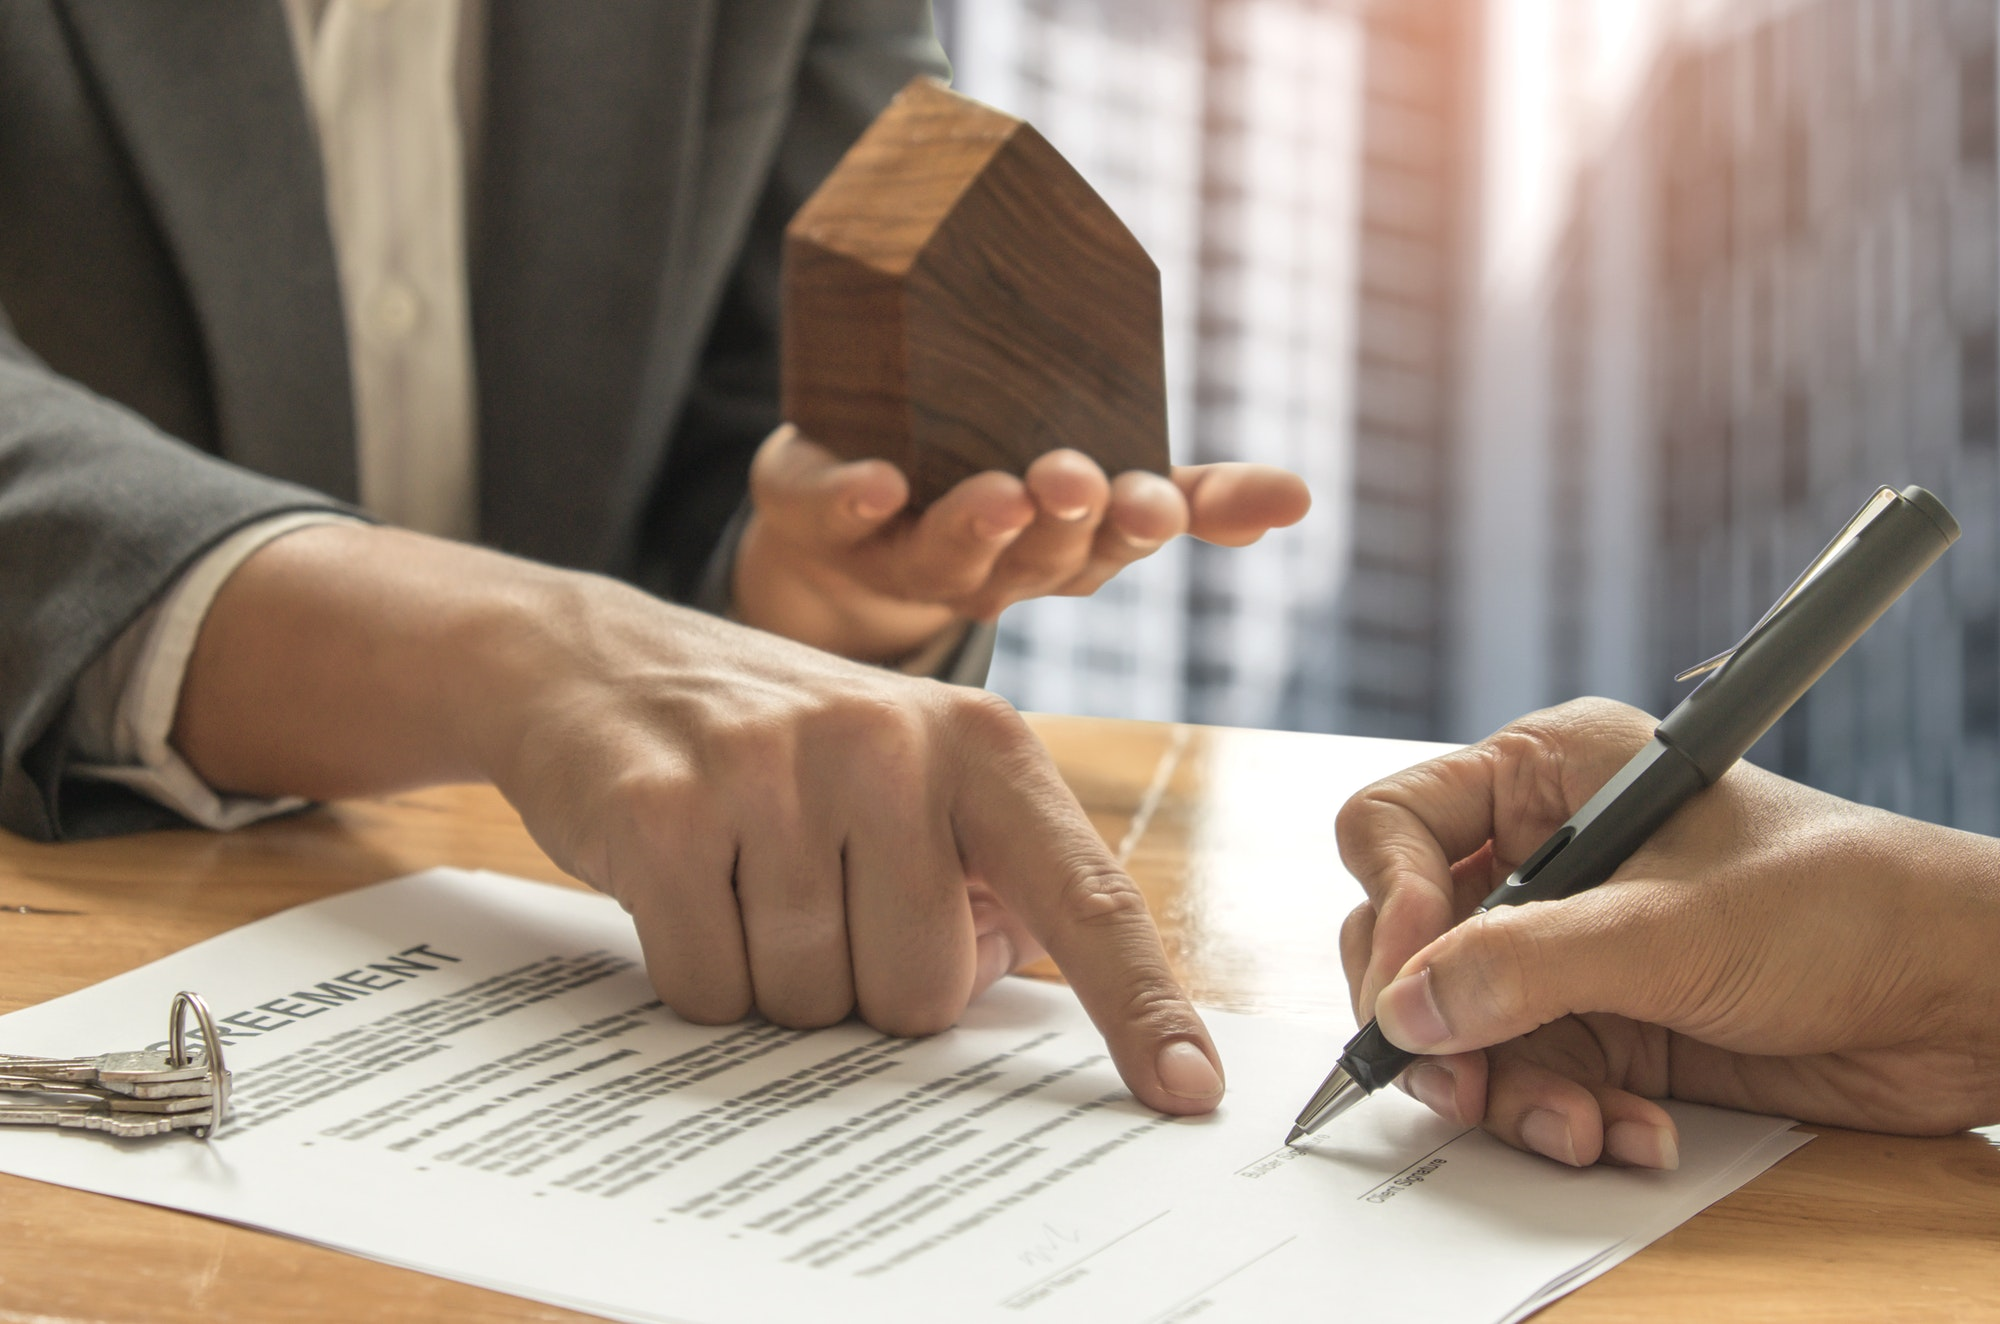 Home brokers and buyers signing a sale contract.